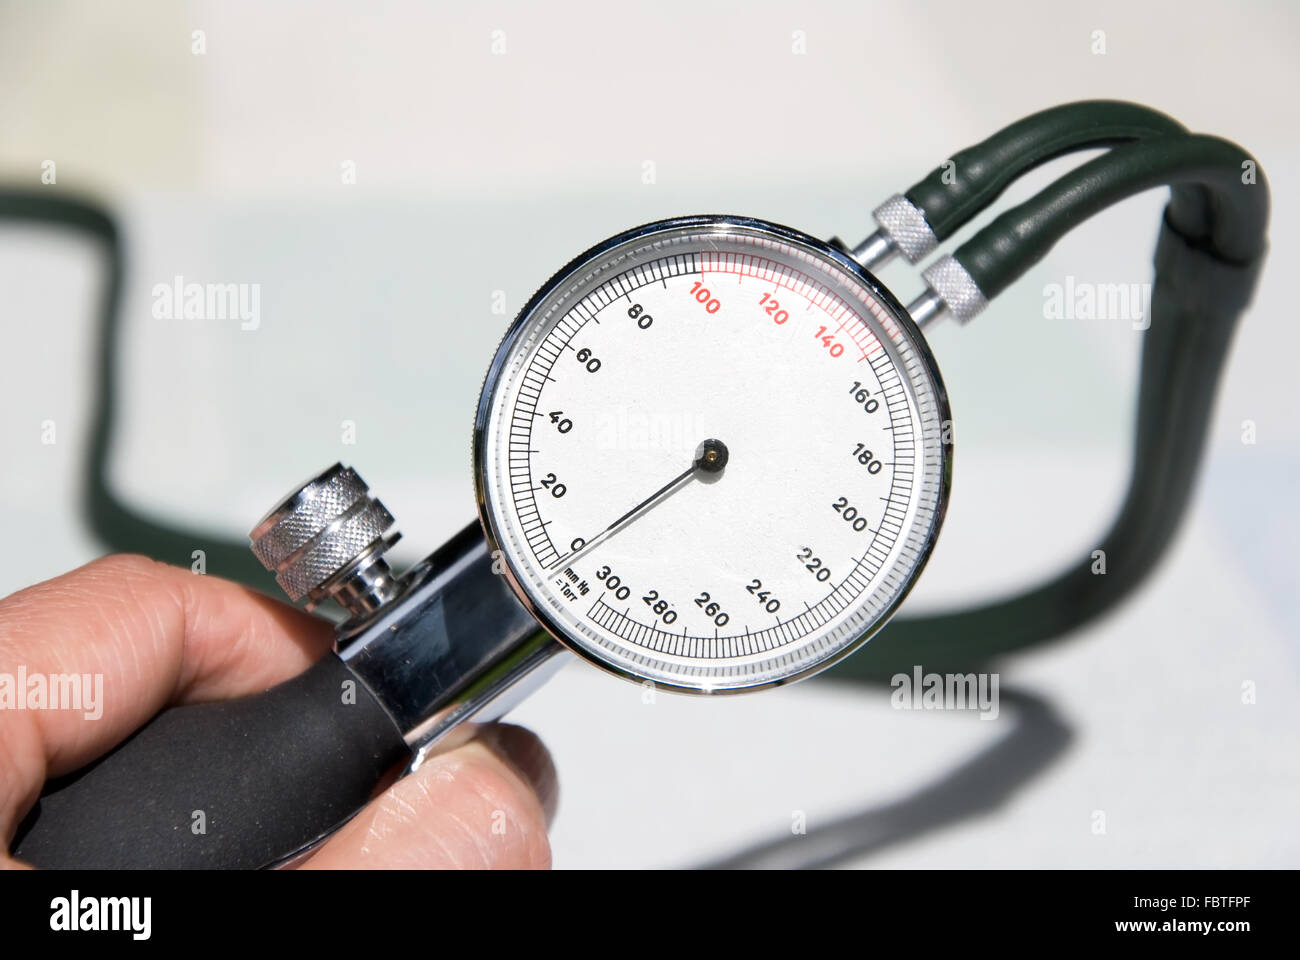 doctor blood pressure - Stock Image